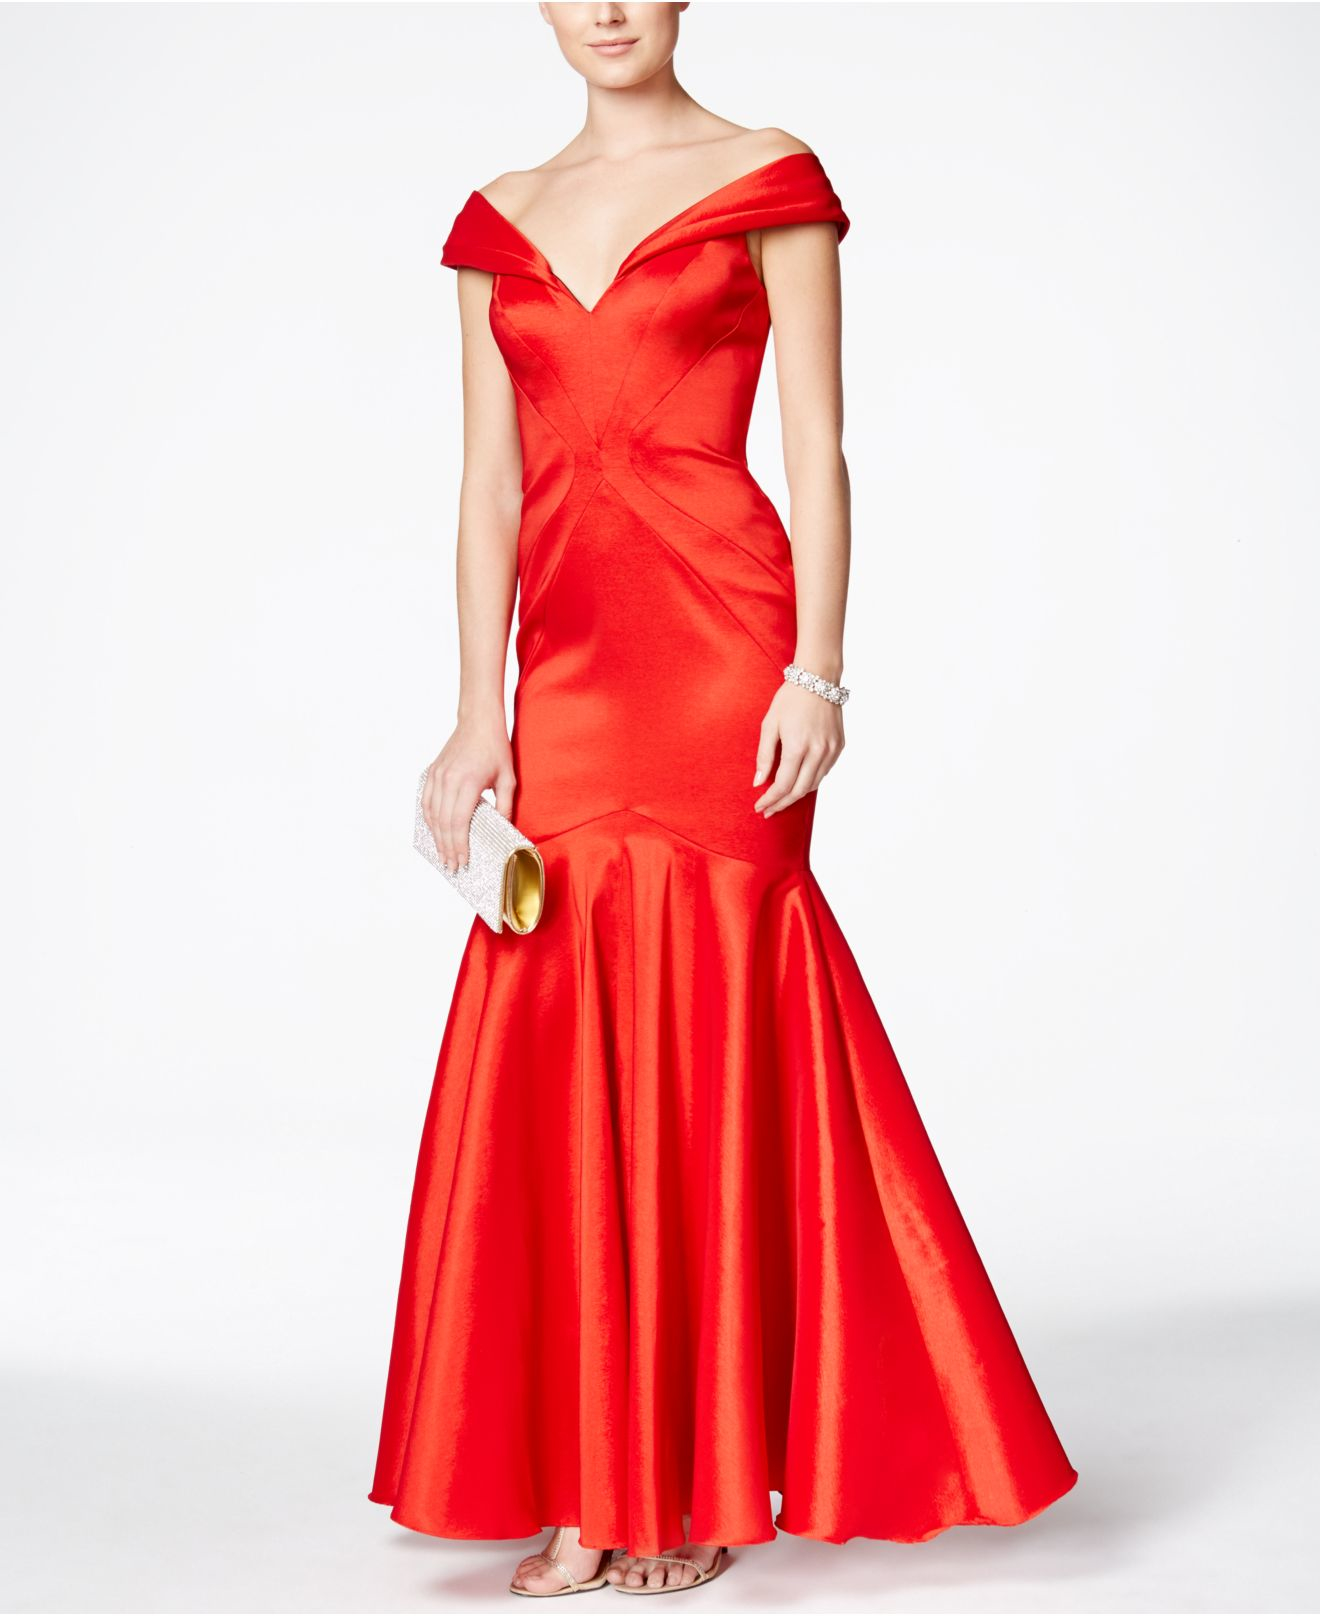 Lyst - Xscape Off-the-shoulder Mermaid Gown in Red